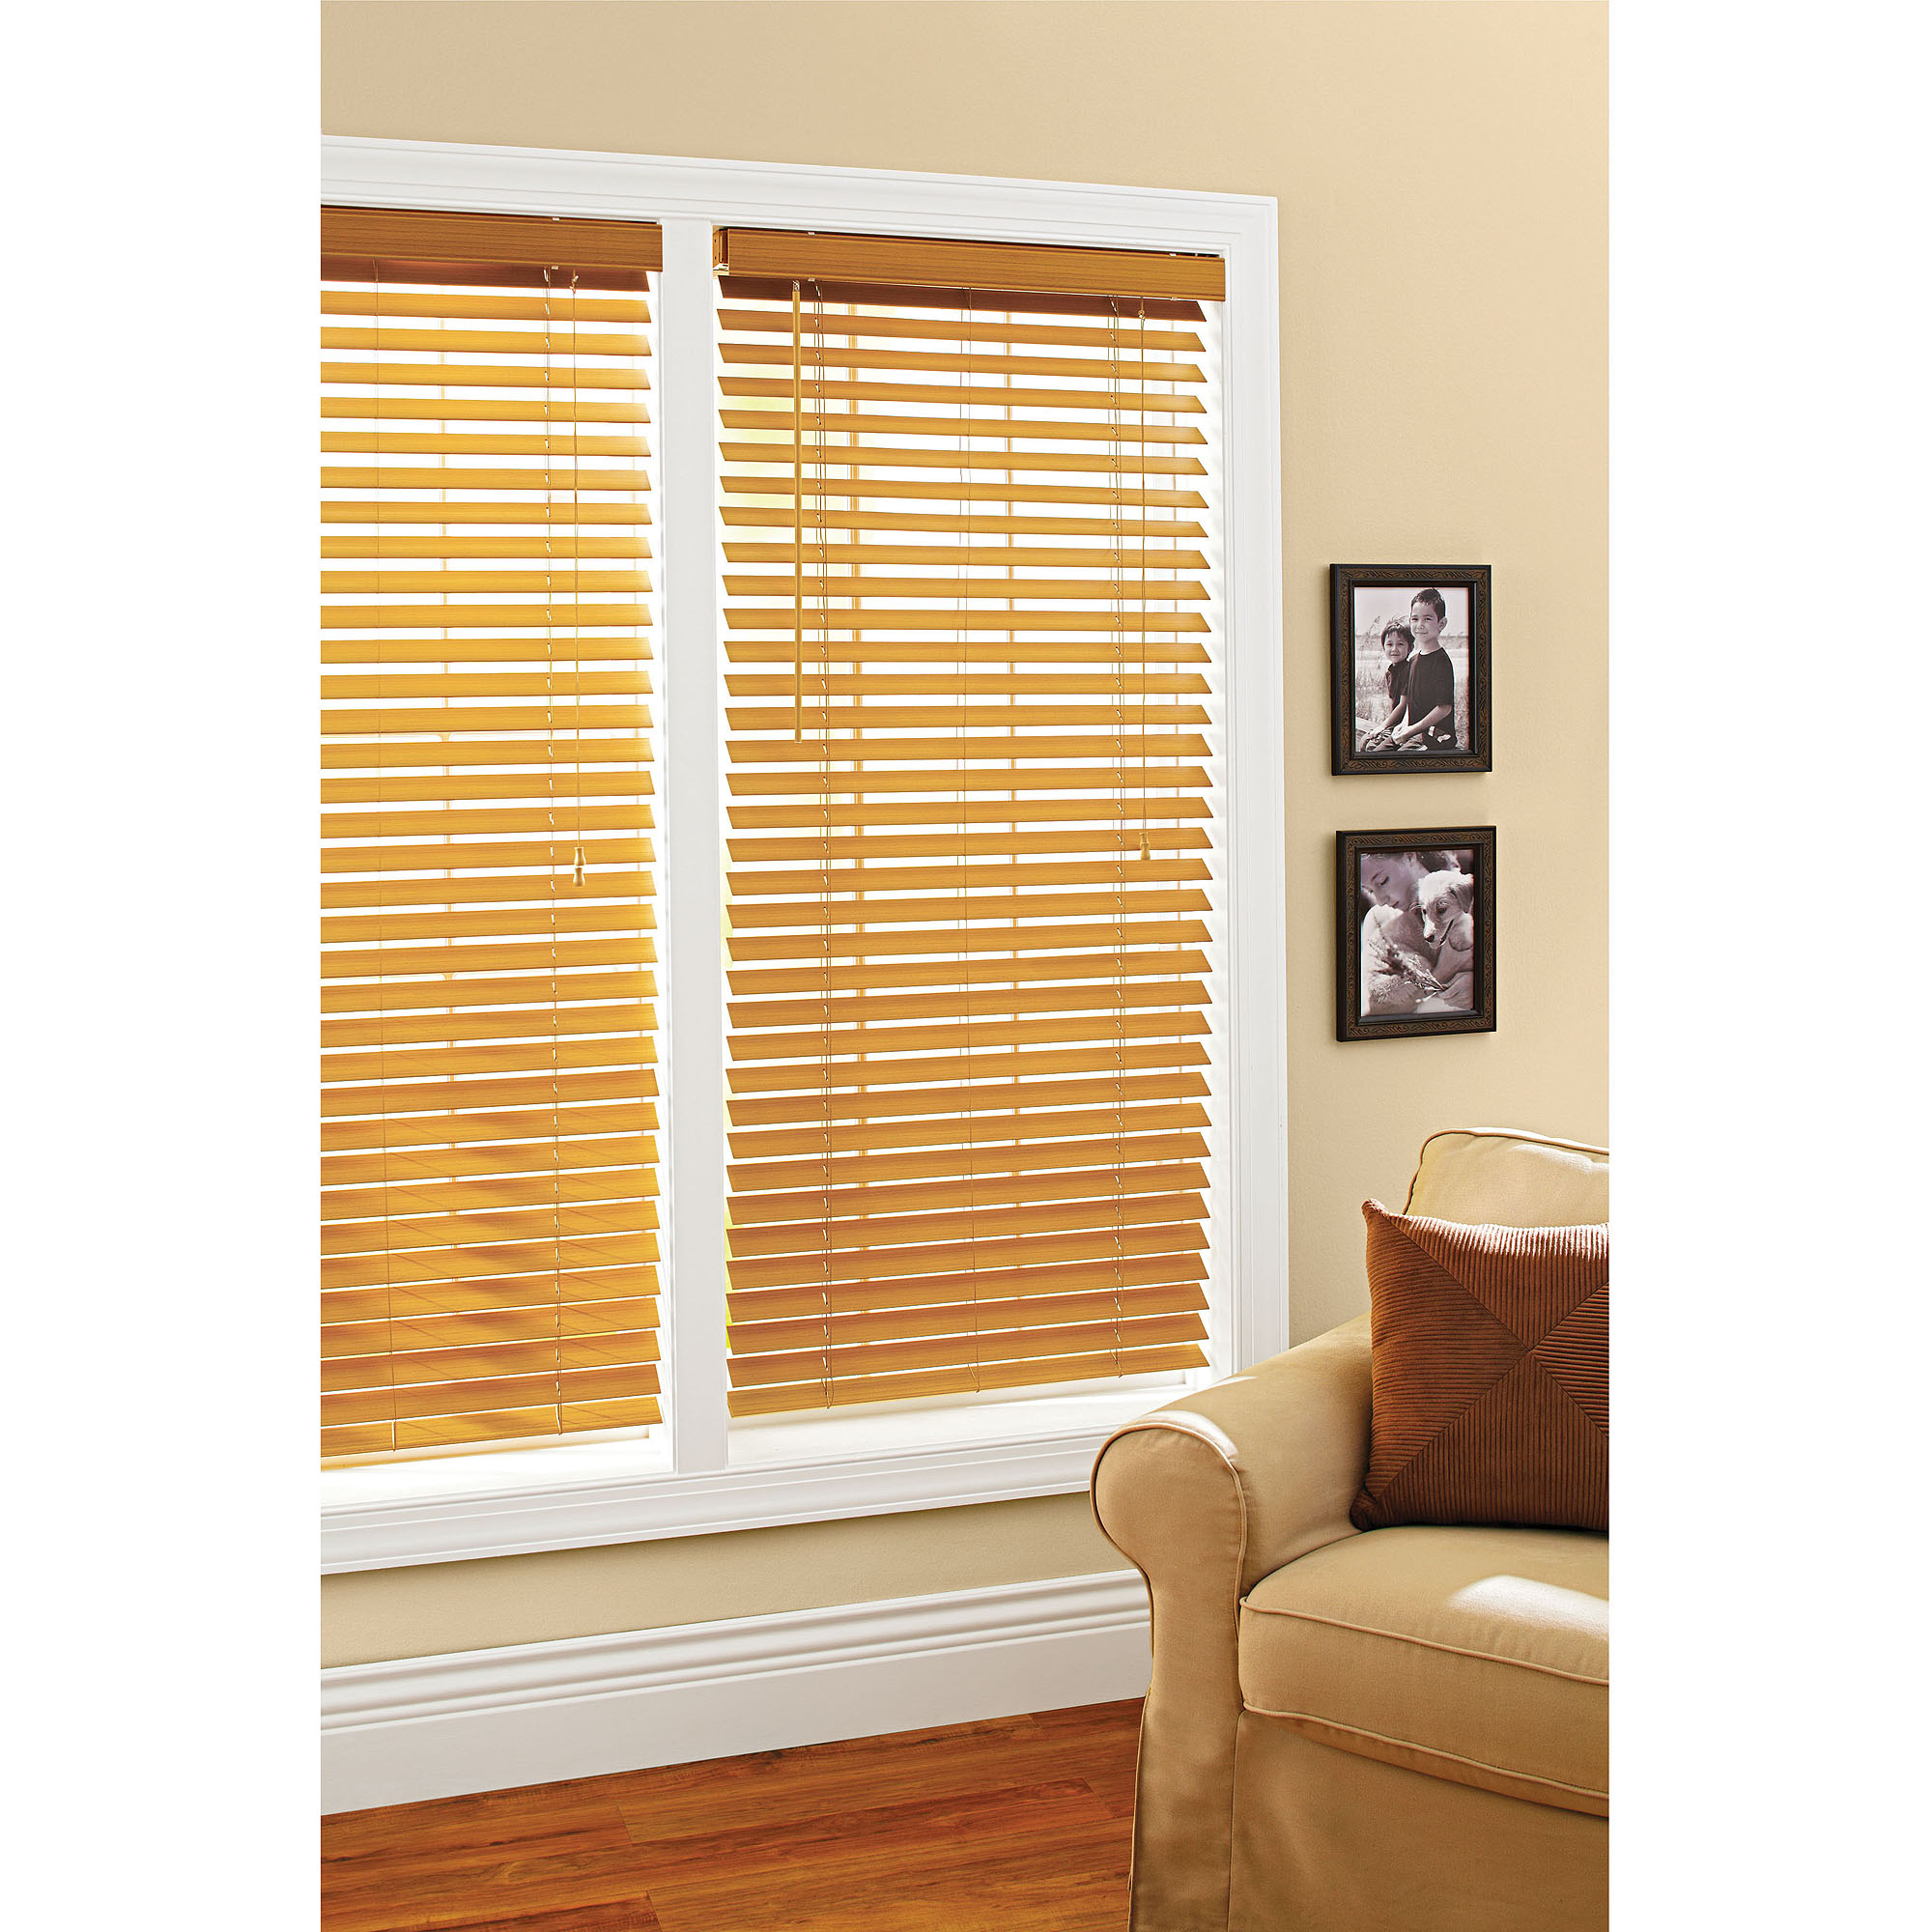 Cheap roman shades clearance - Better Homes And Gardens 2 Faux Wood Windows Blinds